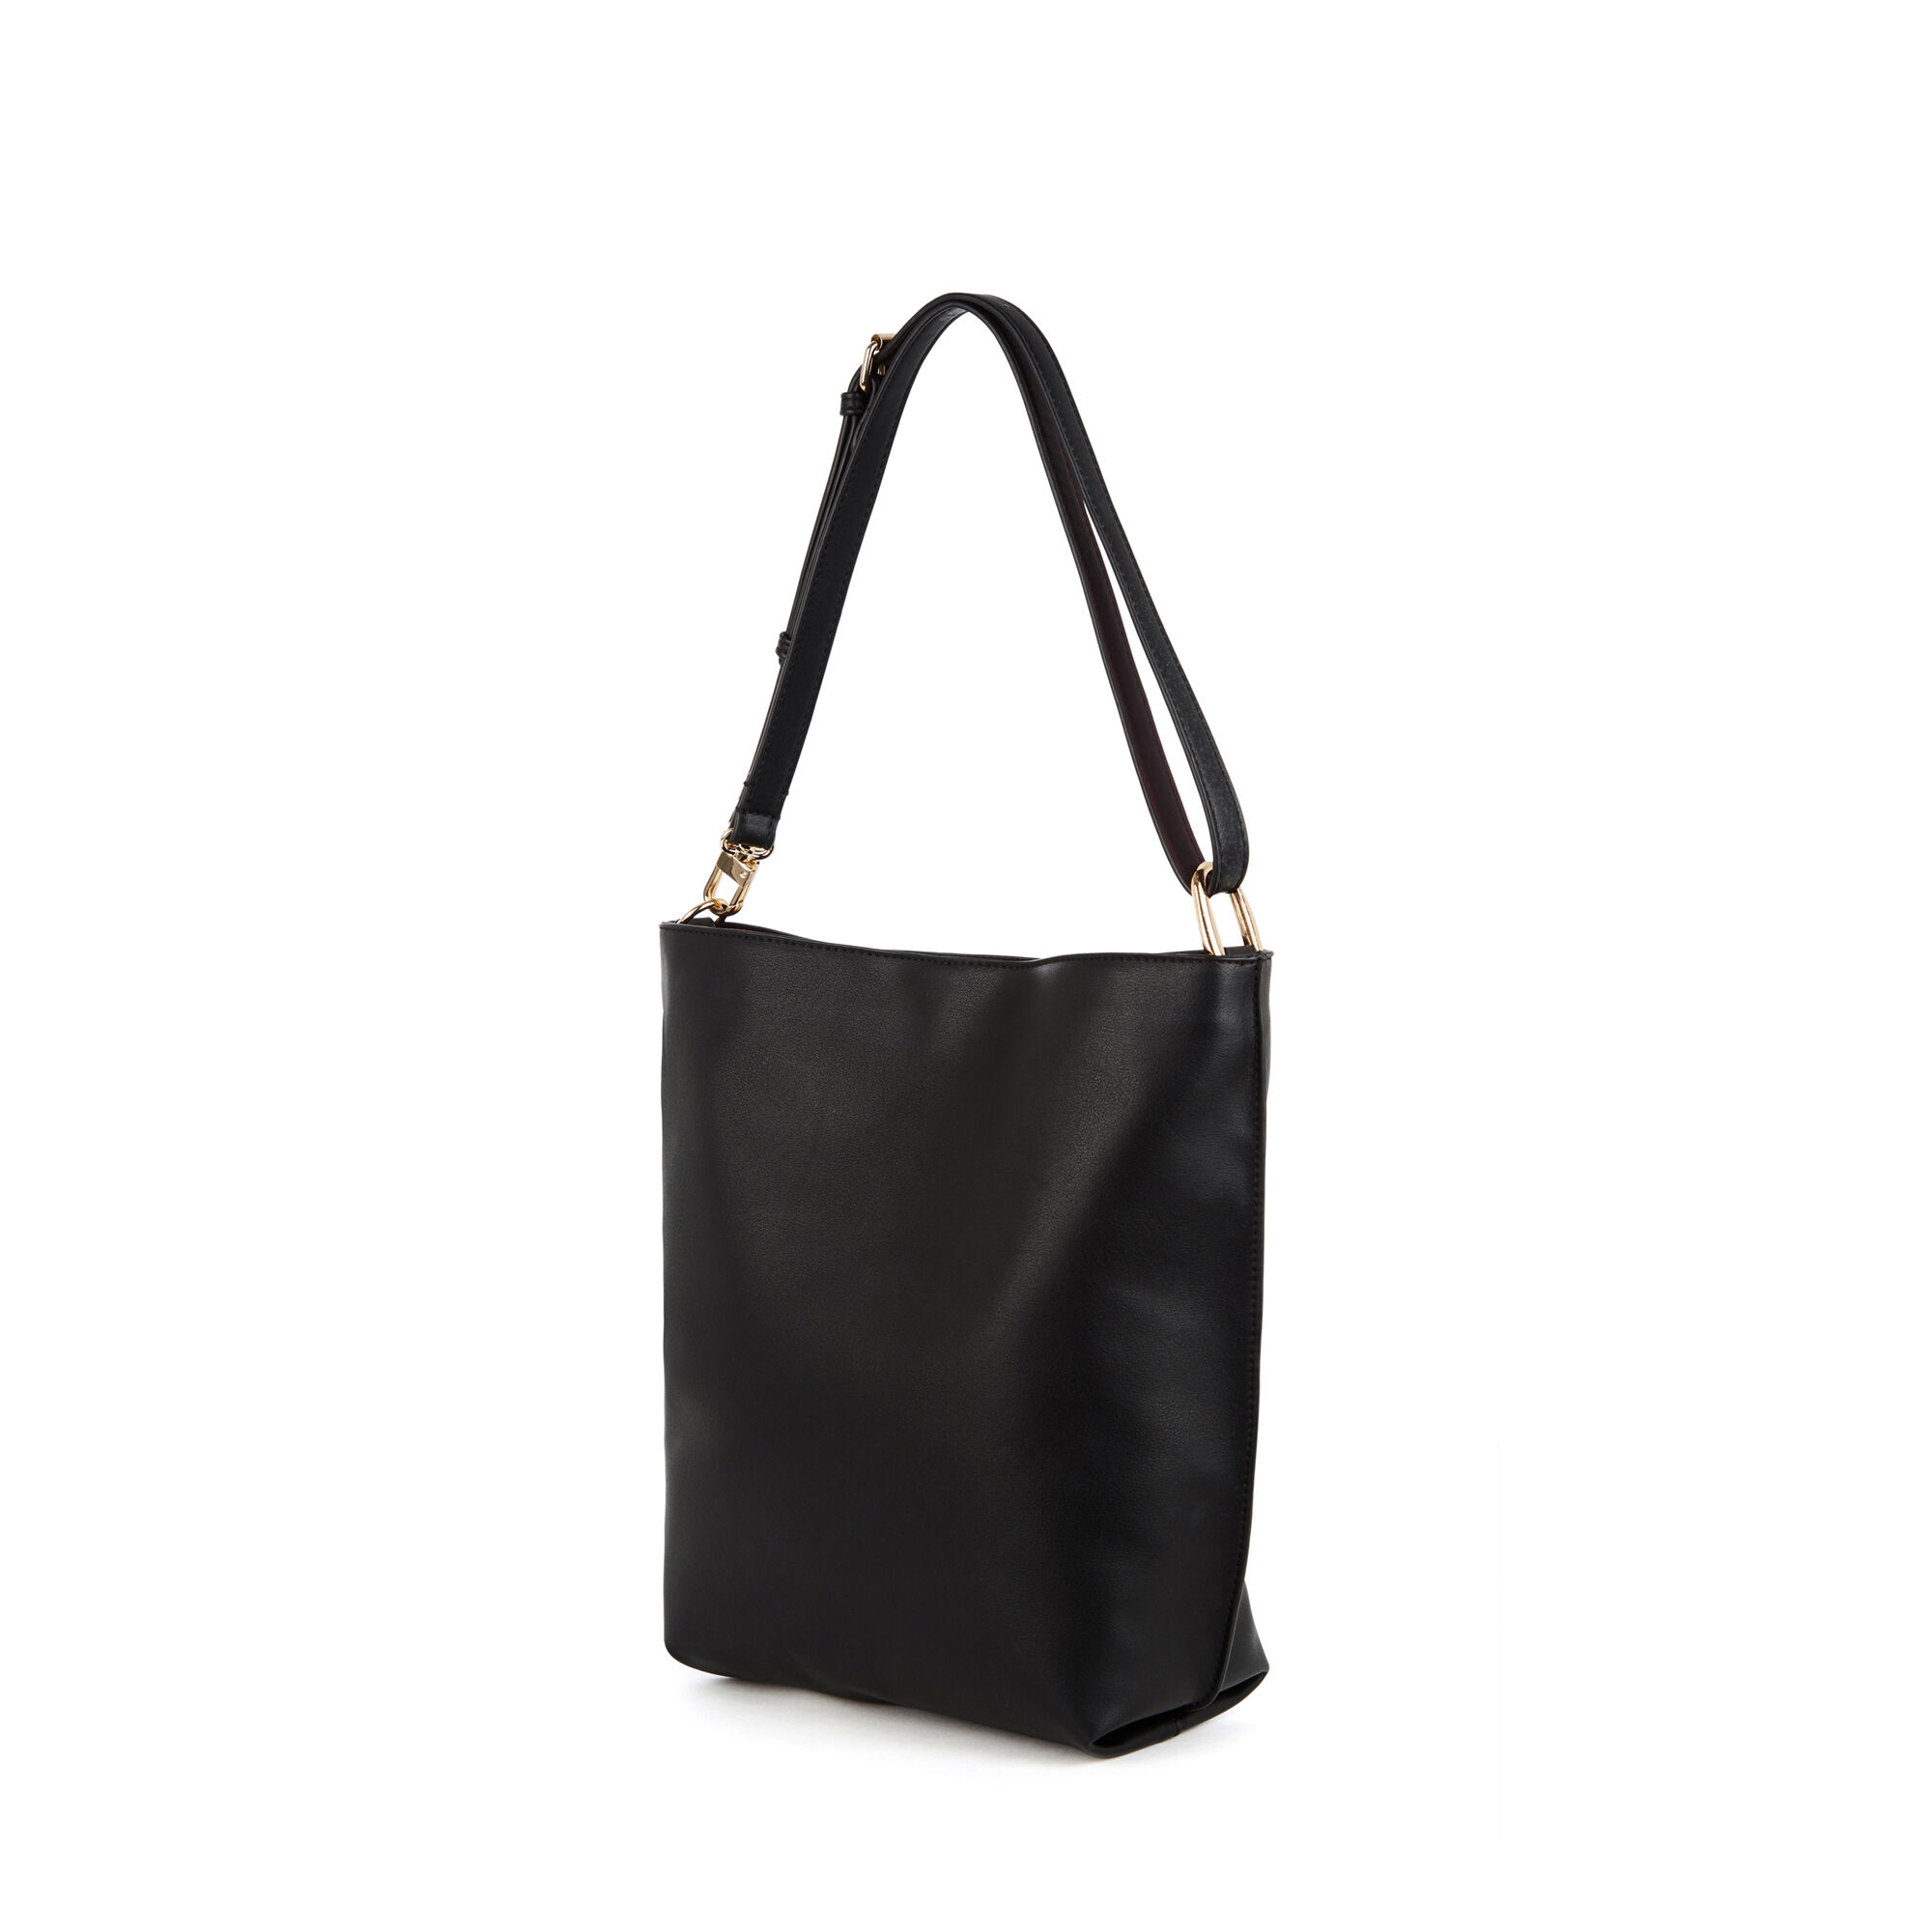 Warehouse, Bonded Hobo Shopper Bag Black 1